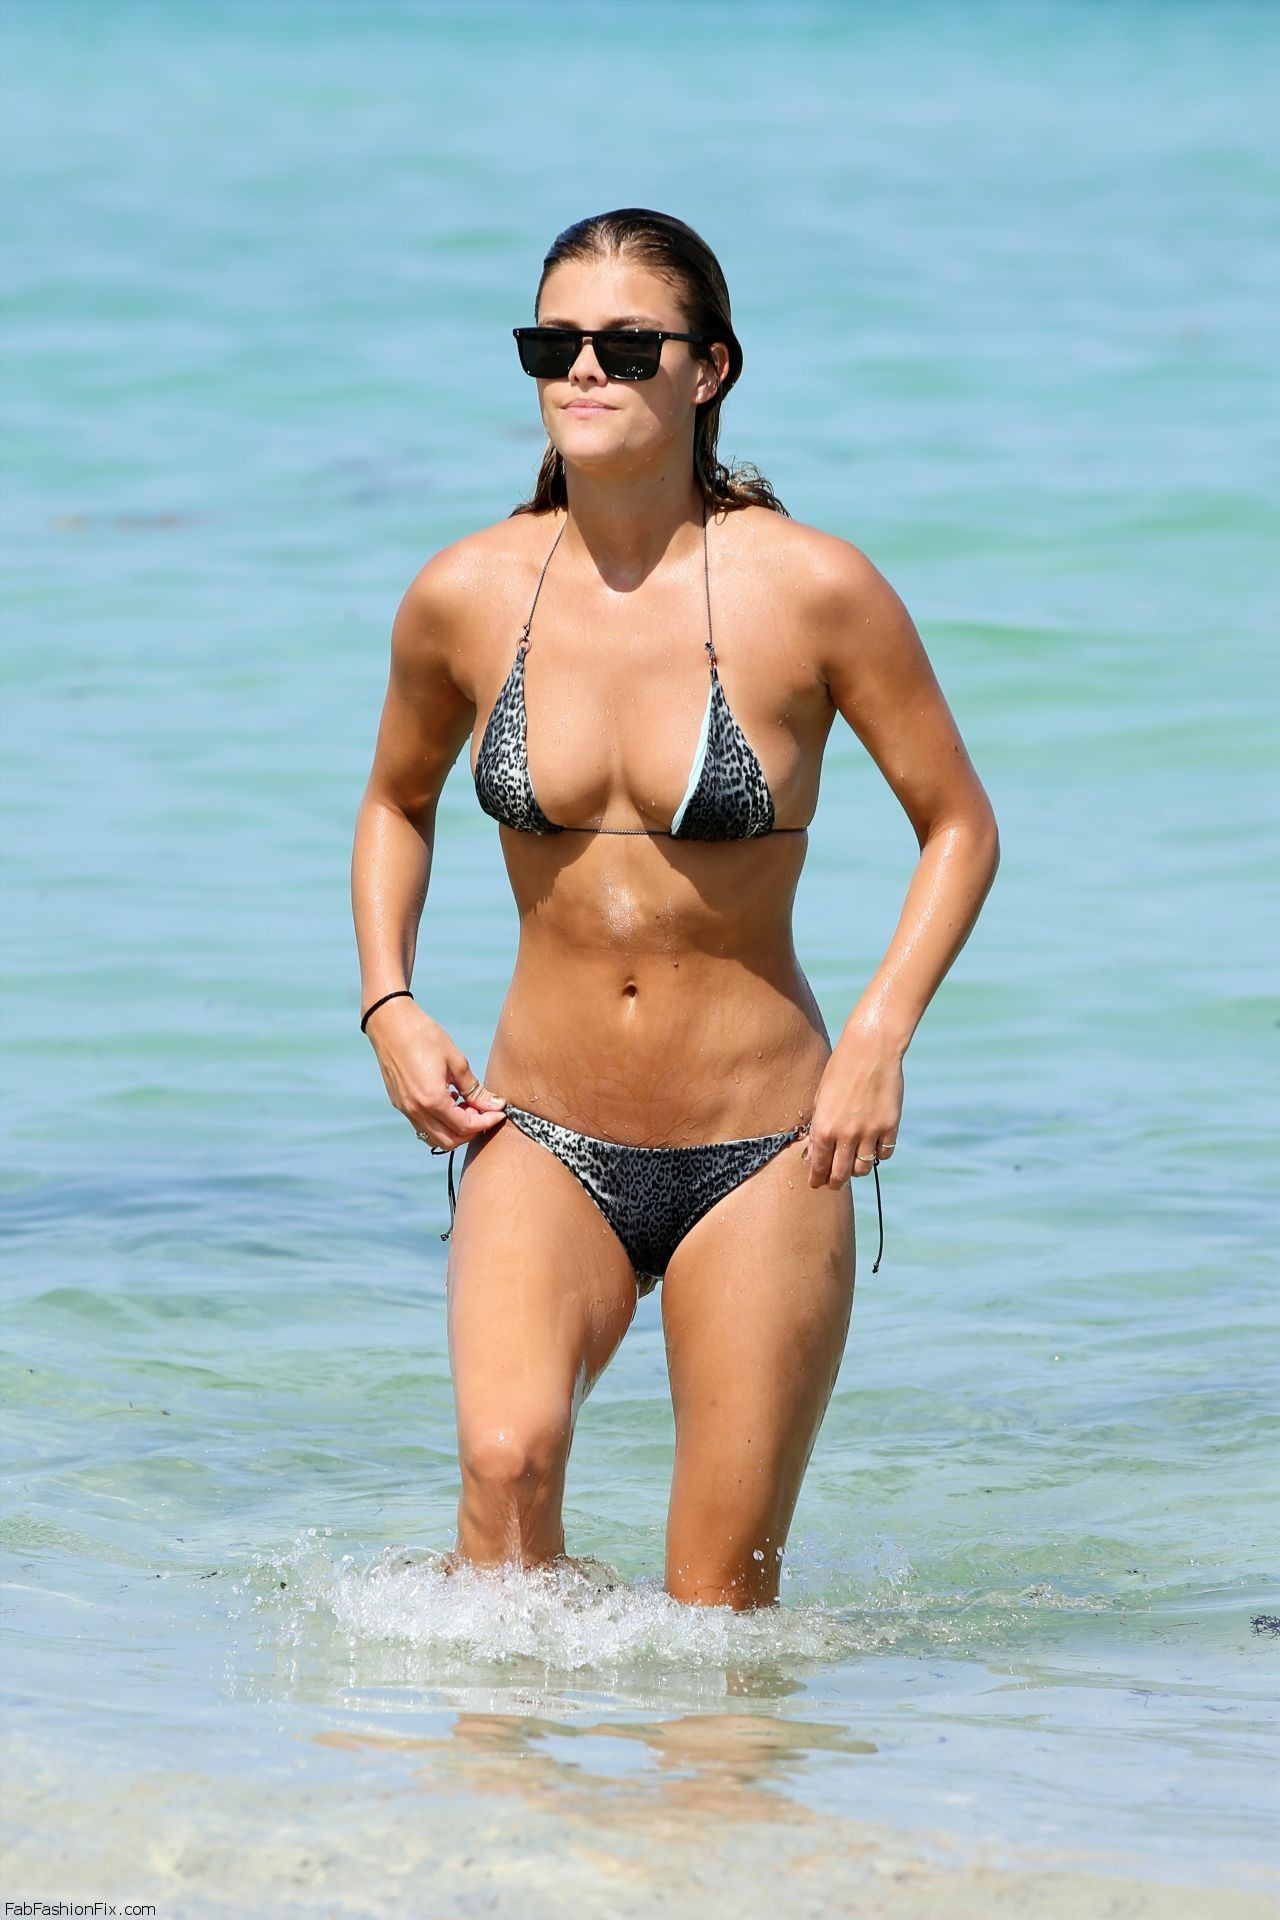 nina-agdal-hot-in-a-bikini-in-miami-july-2014_3